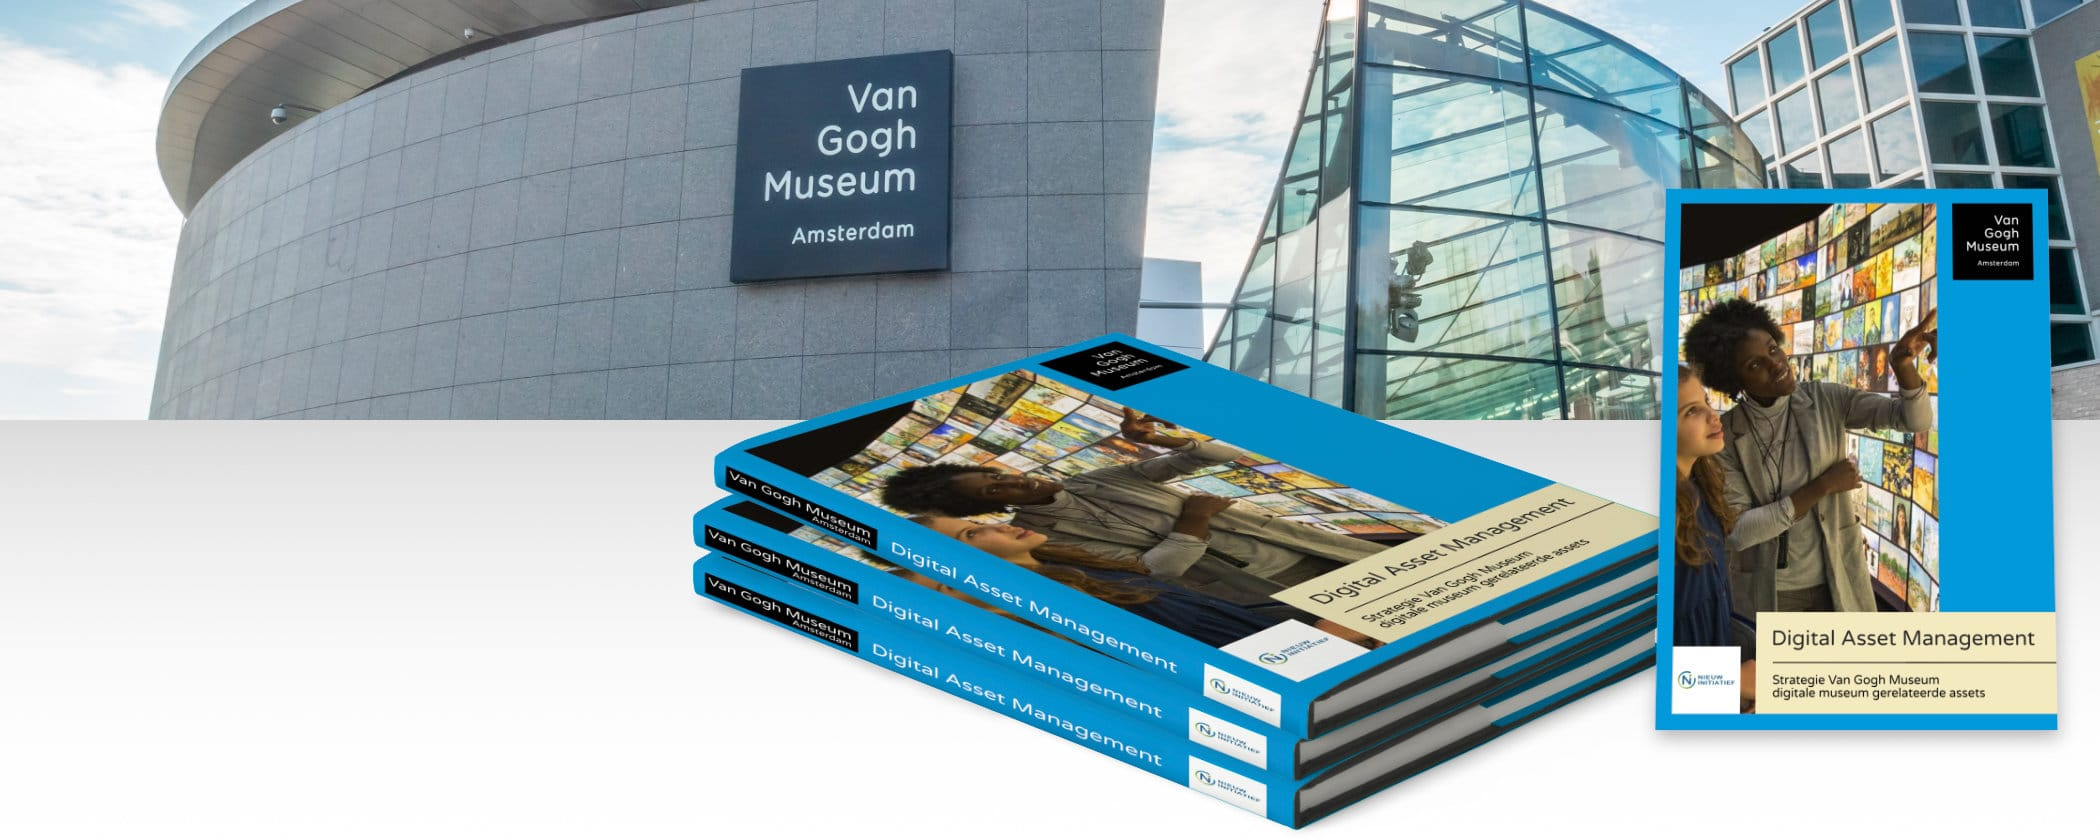 Van Gogh Museum - Digital Asset Management Strategie en ontwerp